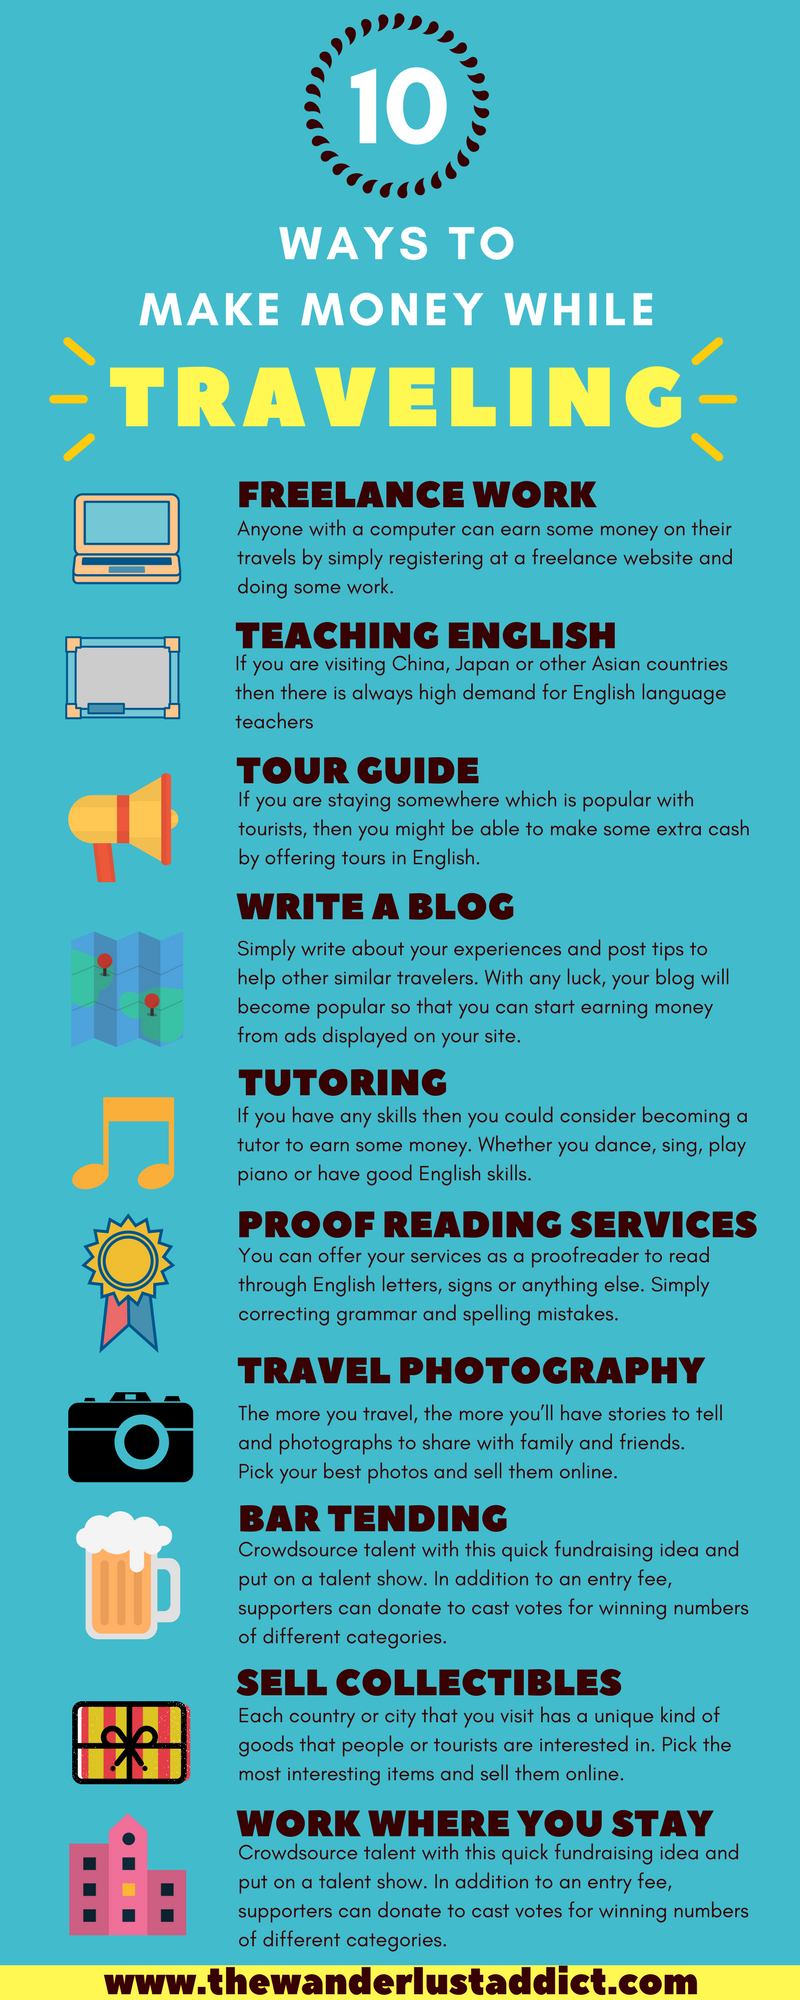 make money traveling infographic